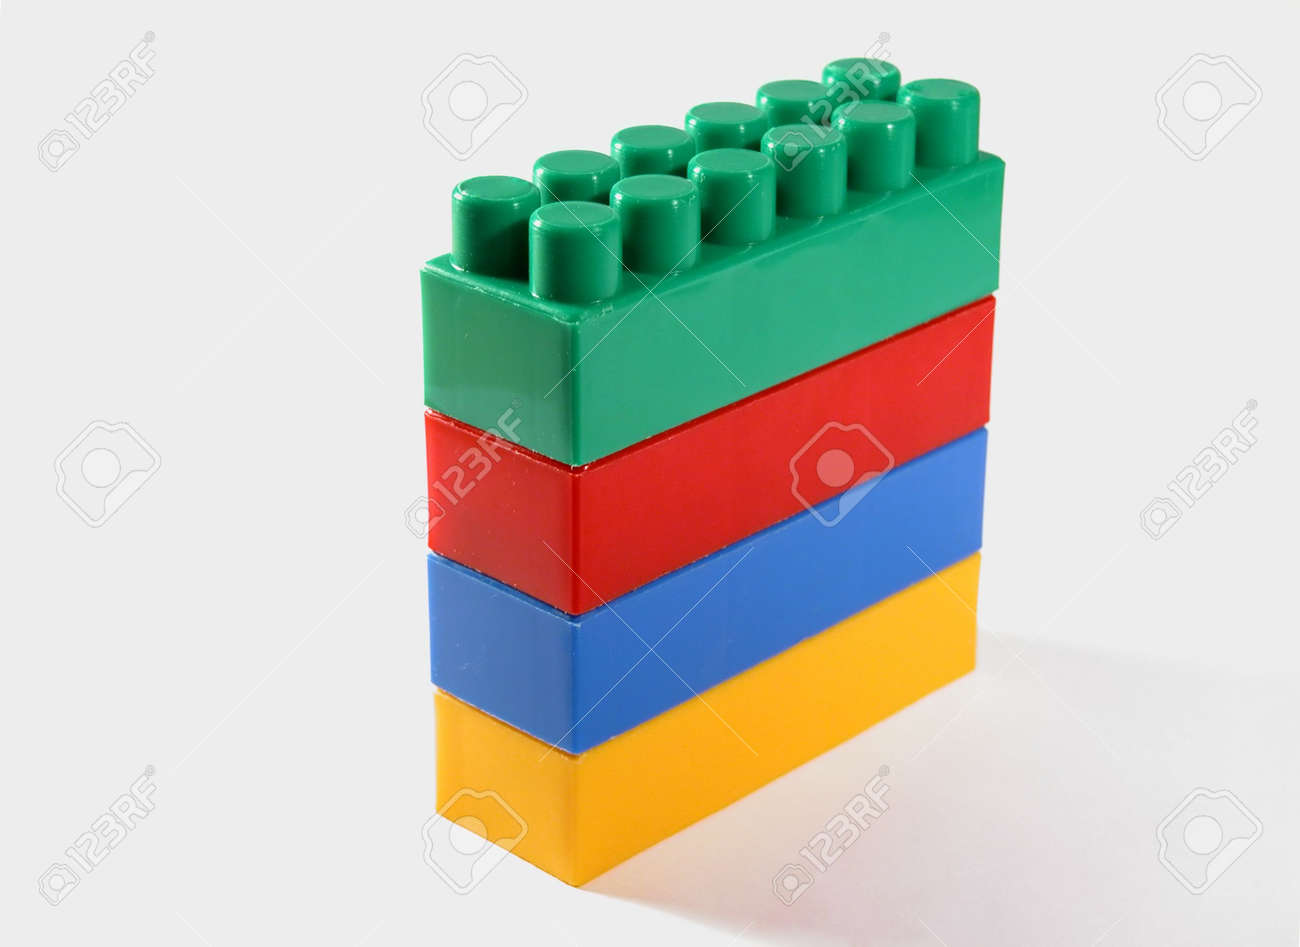 Four plastic toy building blocks standing on each other Stock Photo - 659036